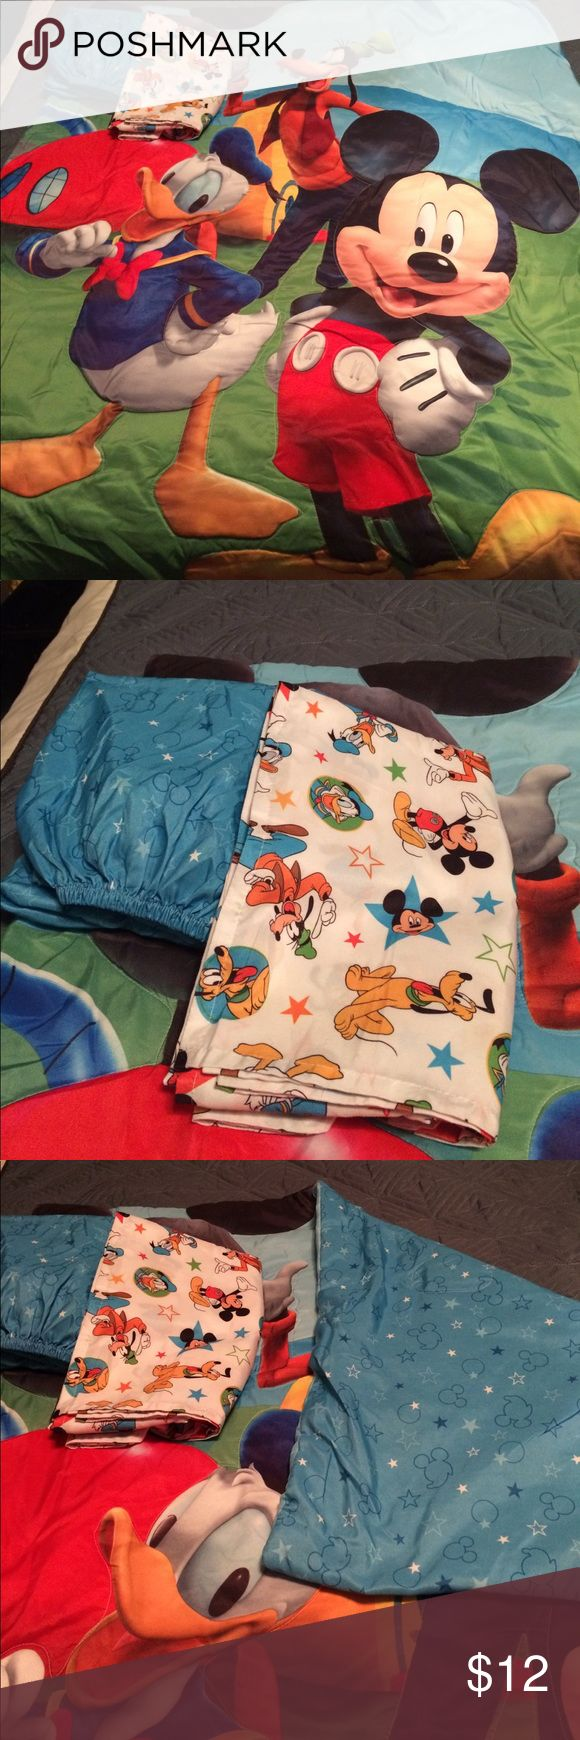 Mickey Mouse toddler bedding Mickey Mouse toddler bed blanket, fitted sheet and flat sheet. Mickey Mouse Clubhouse design. Fits toddler size bed. Free extra fitted sheet. Sports design. Disney Other